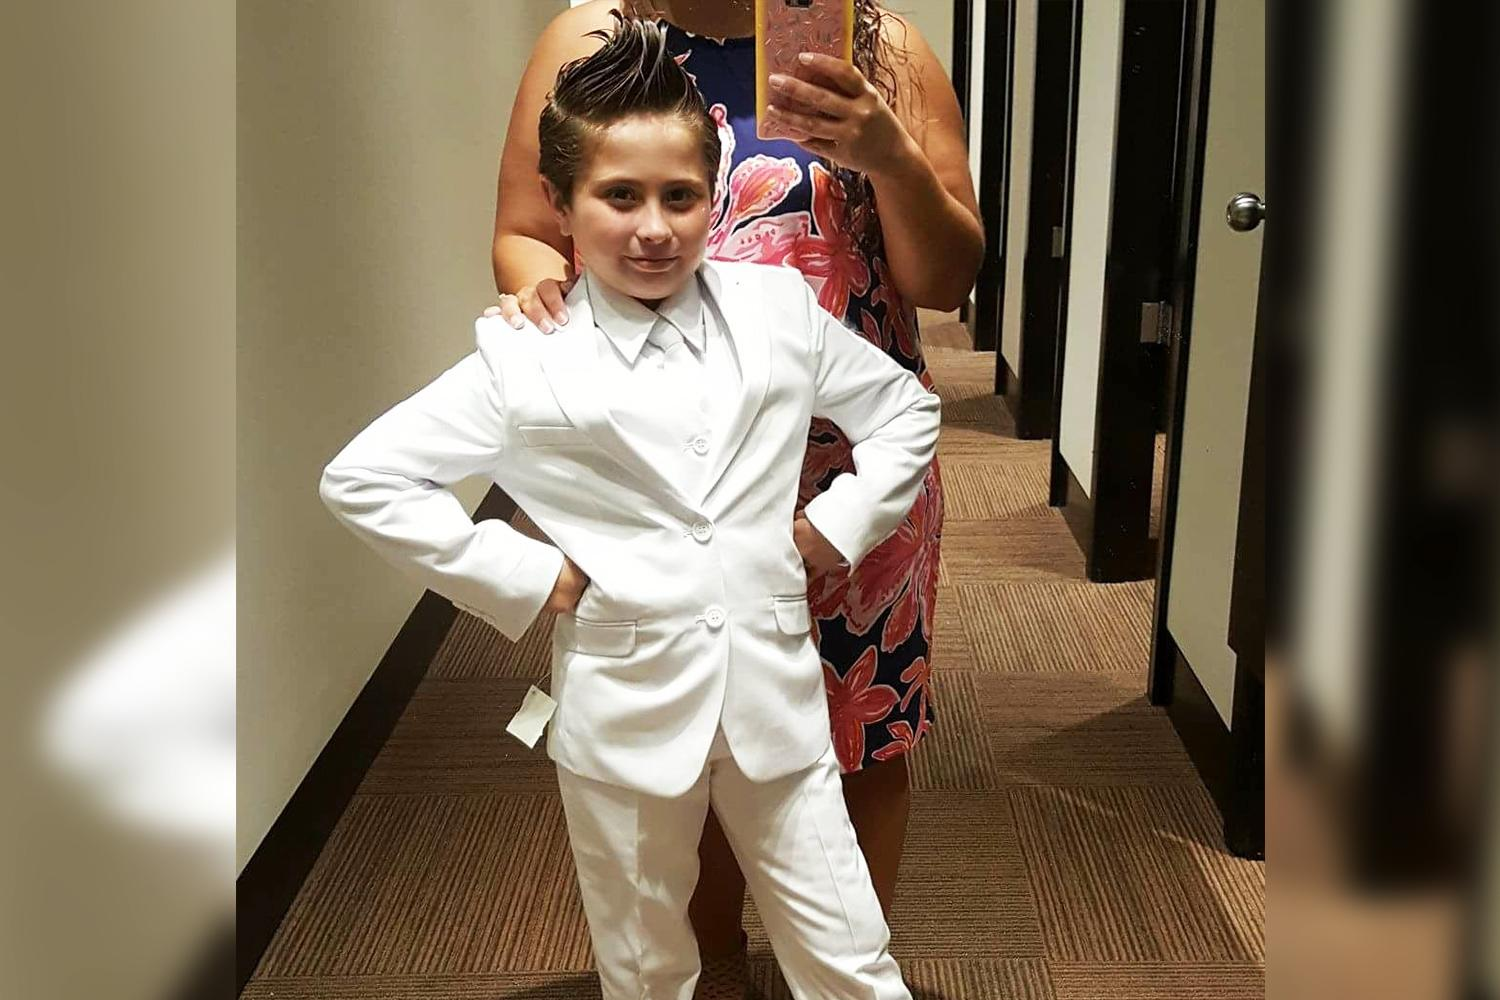 9-year-old 'heartbroken' she's not allowed to wear pantsuit to her communion